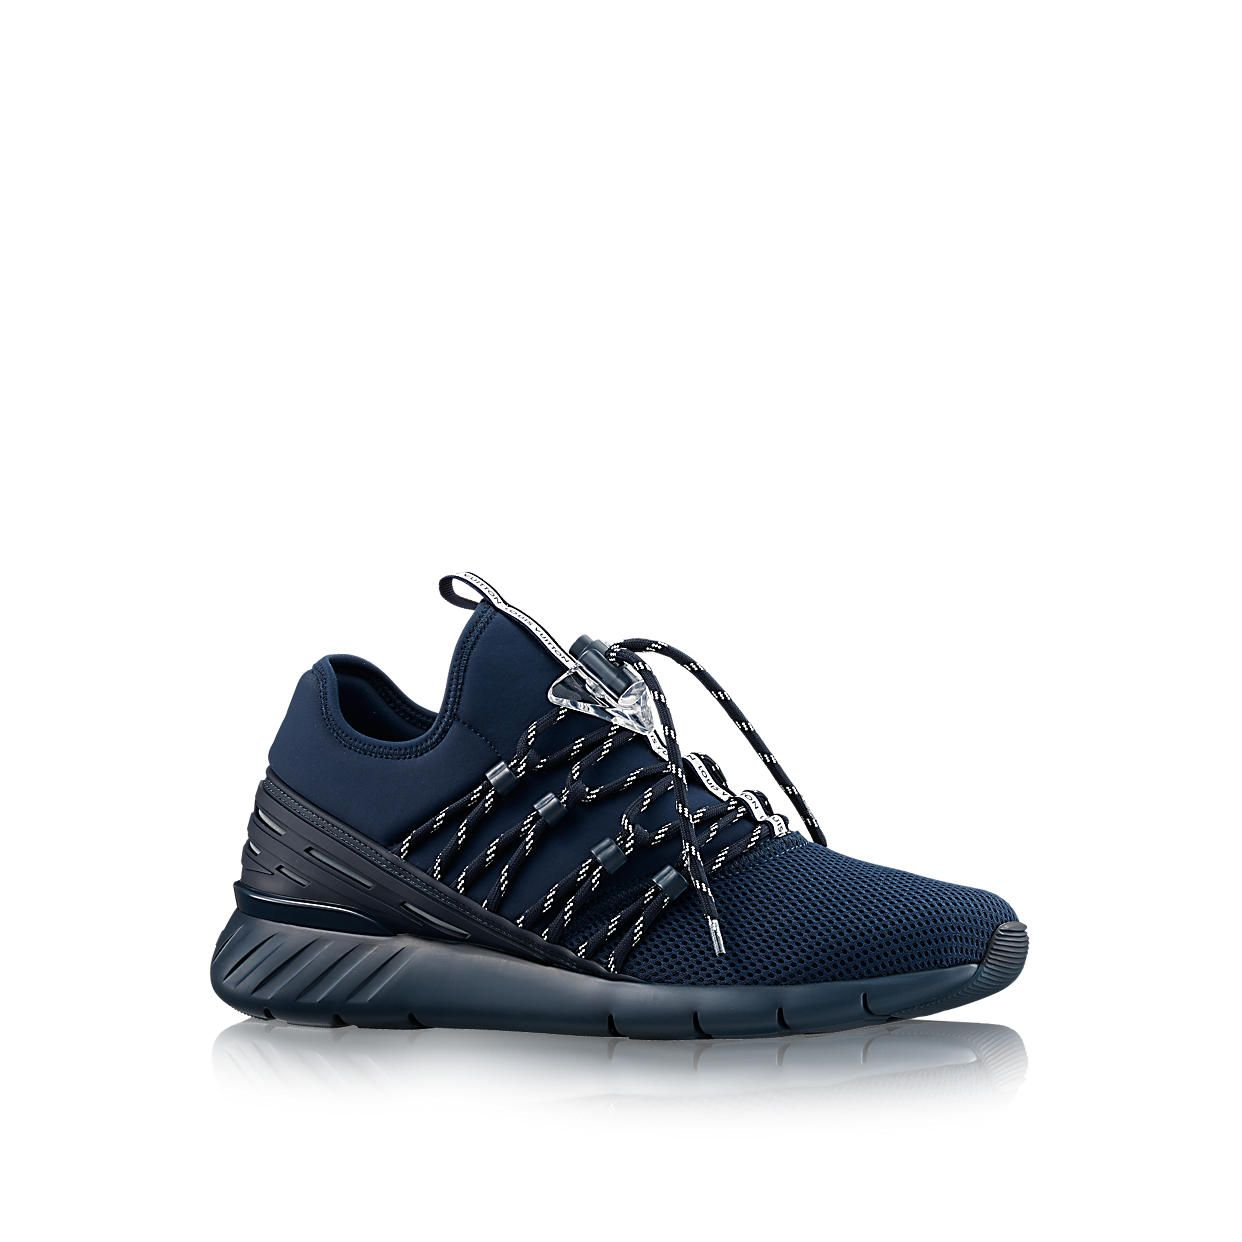 6c46ae32f4f Fastlane Sneakers in Men's America's Cup 2017 collections by Louis ...